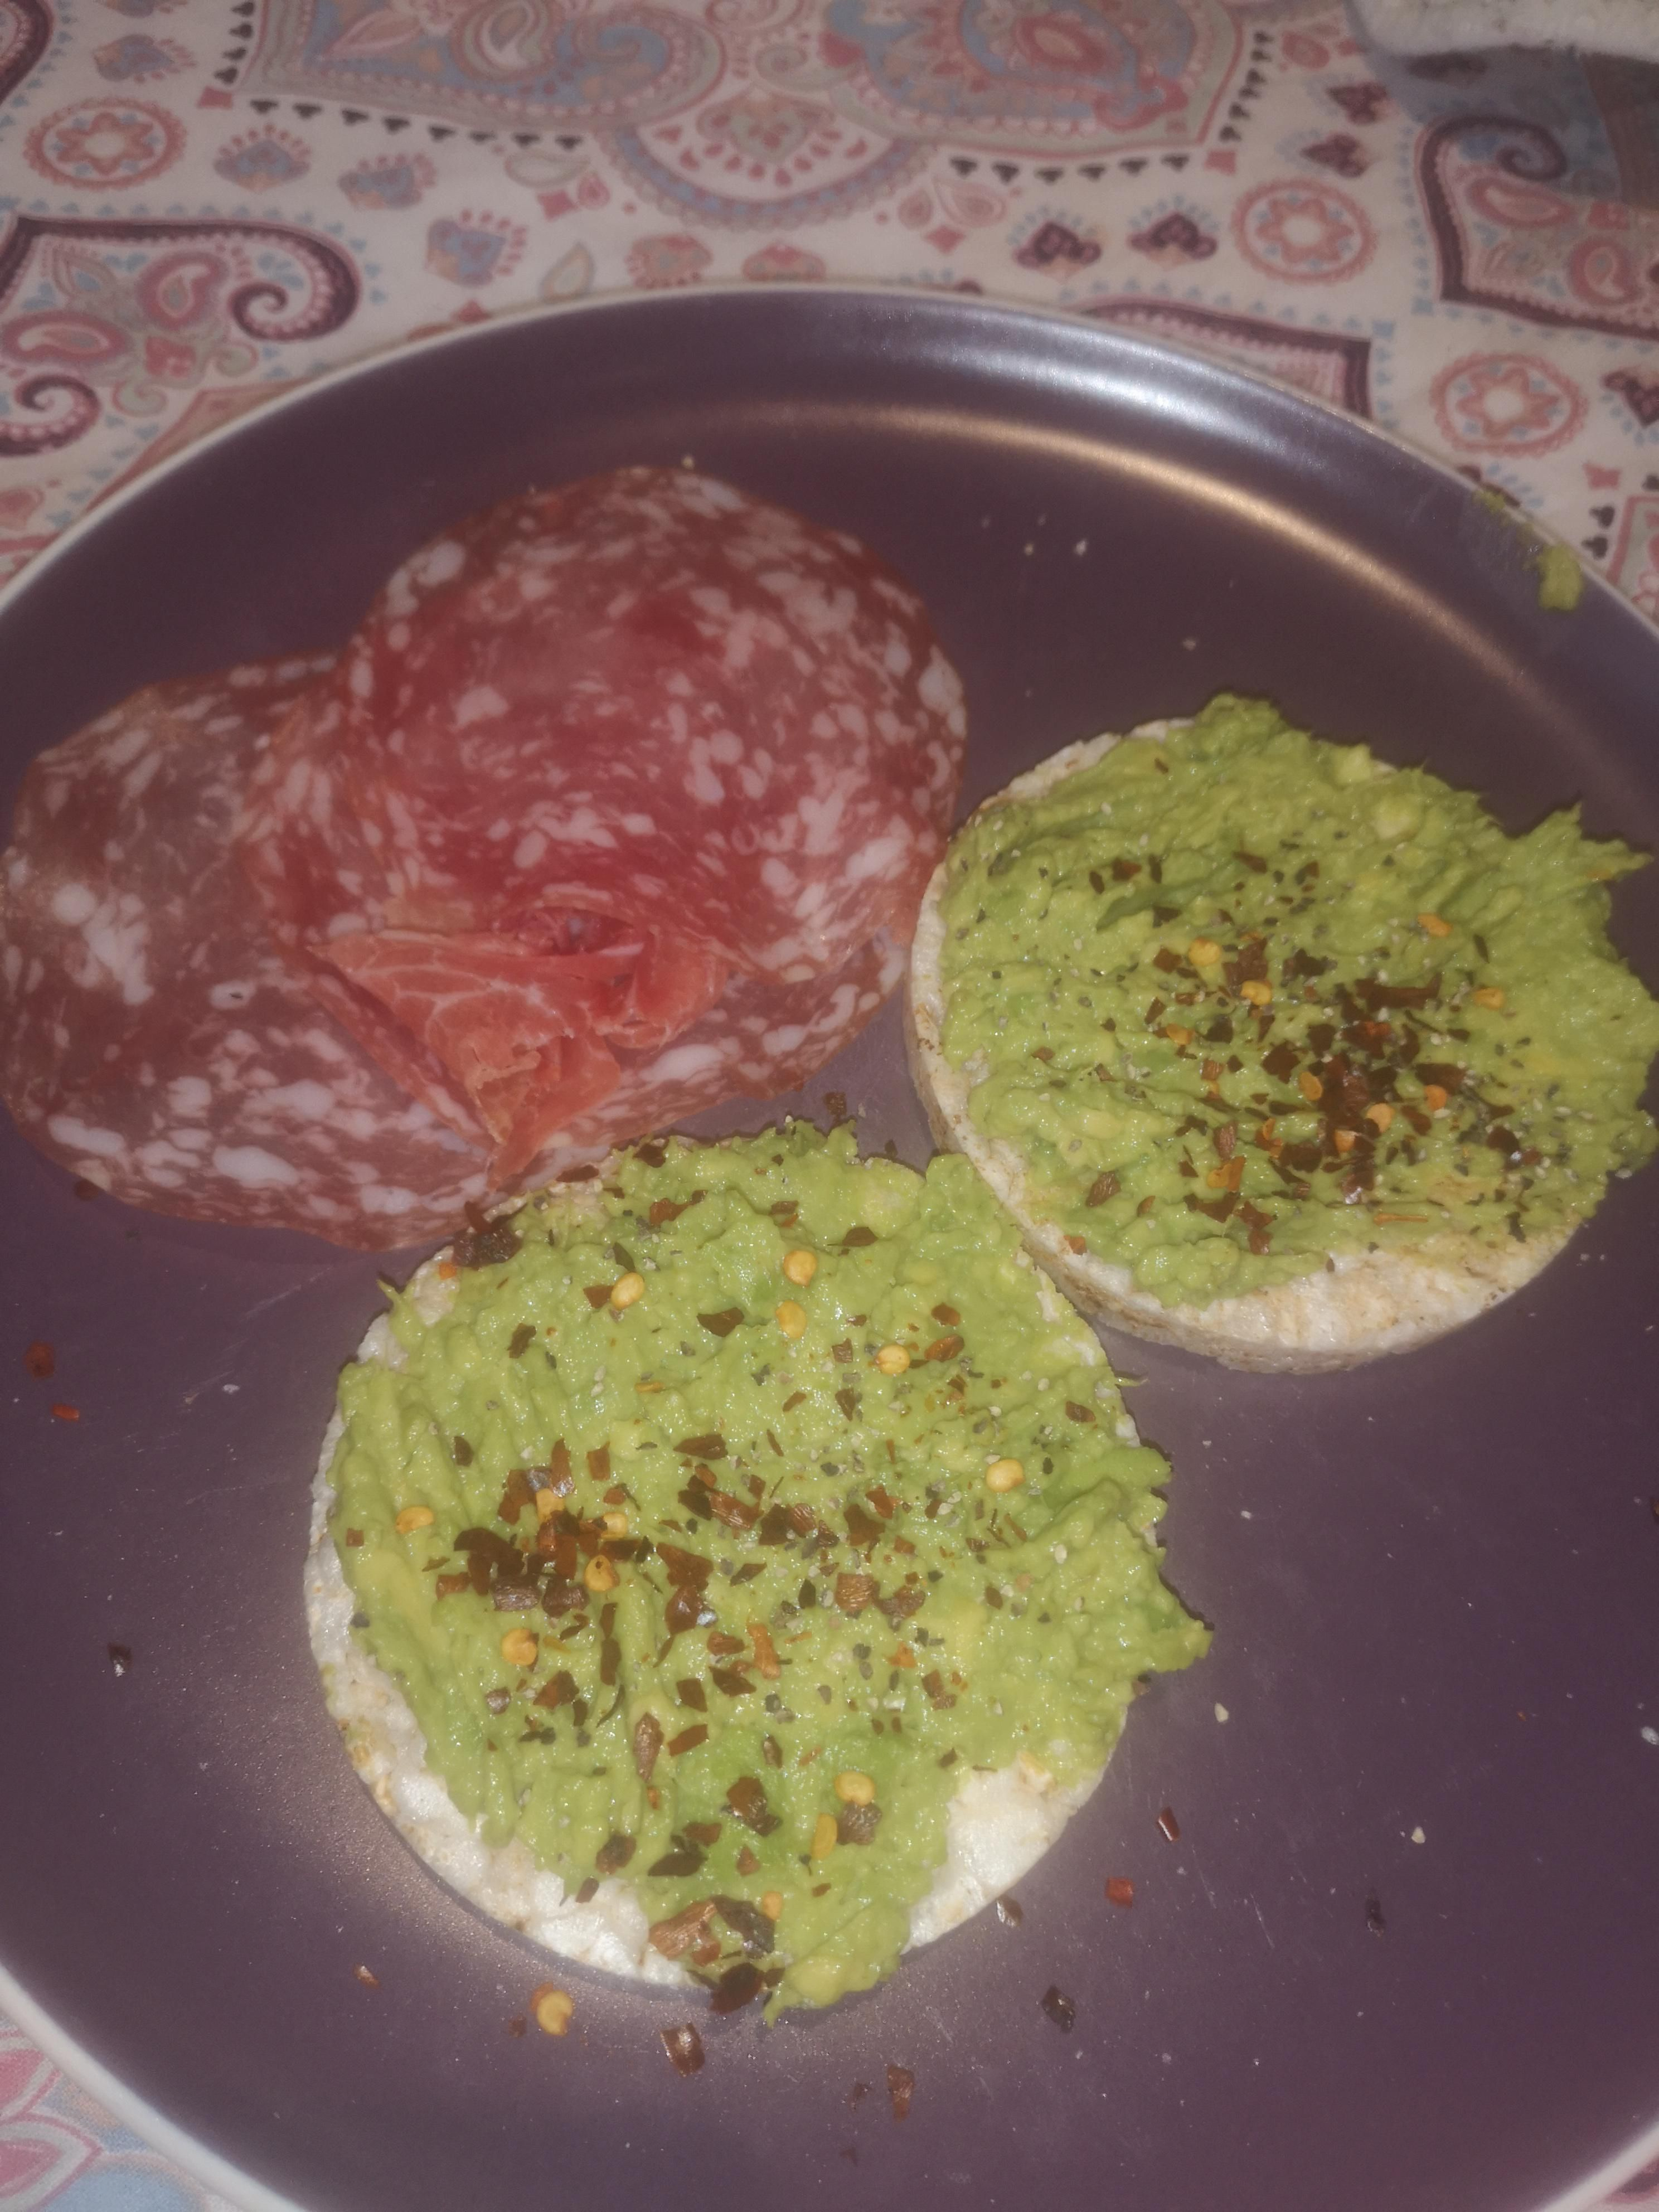 Avocado on rice cakes with a couple of slices of salami